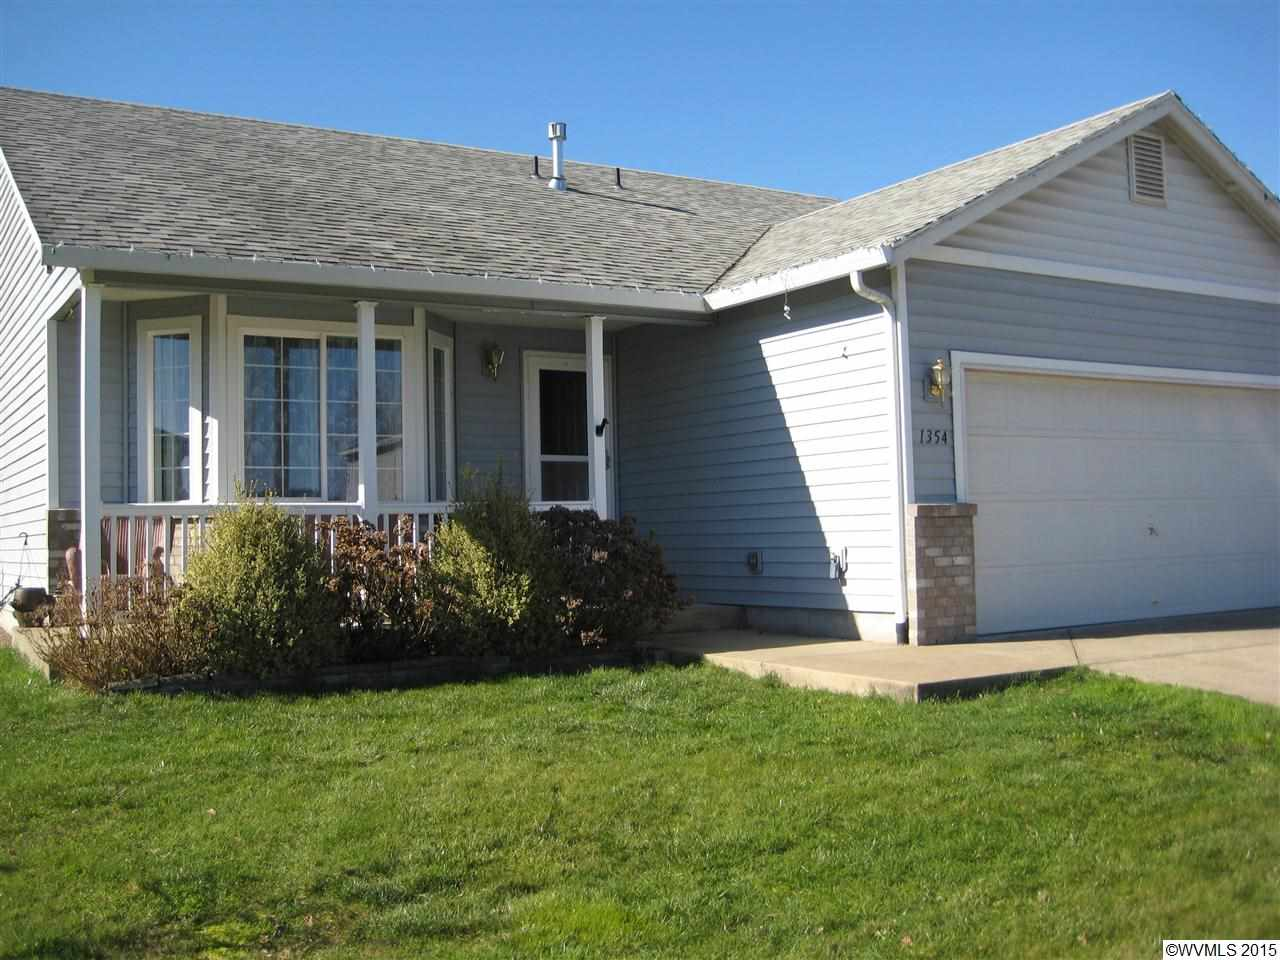 1354 S 6th St, Independence, OR 97351